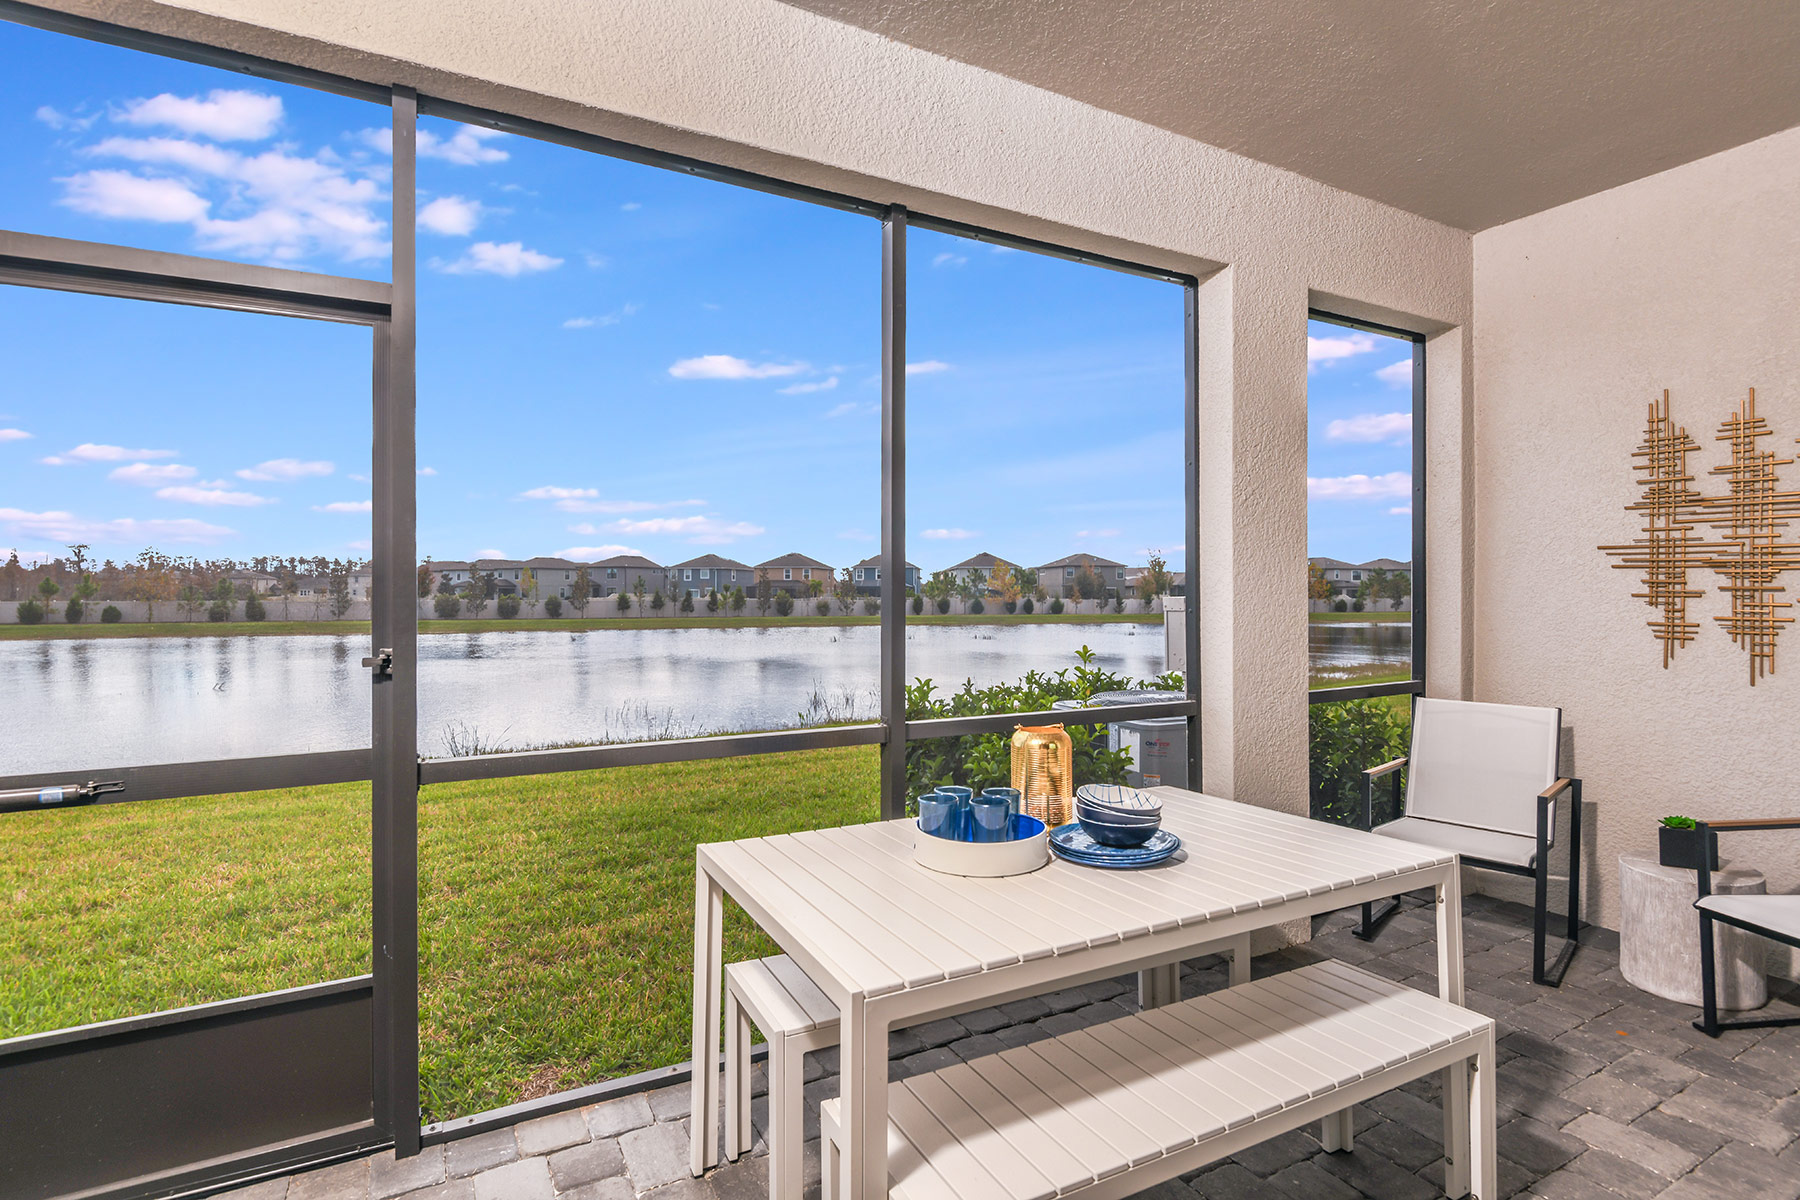 Marianna Plan Patio at Parkview at Long Lake Ranch in Lutz Florida by Mattamy Homes